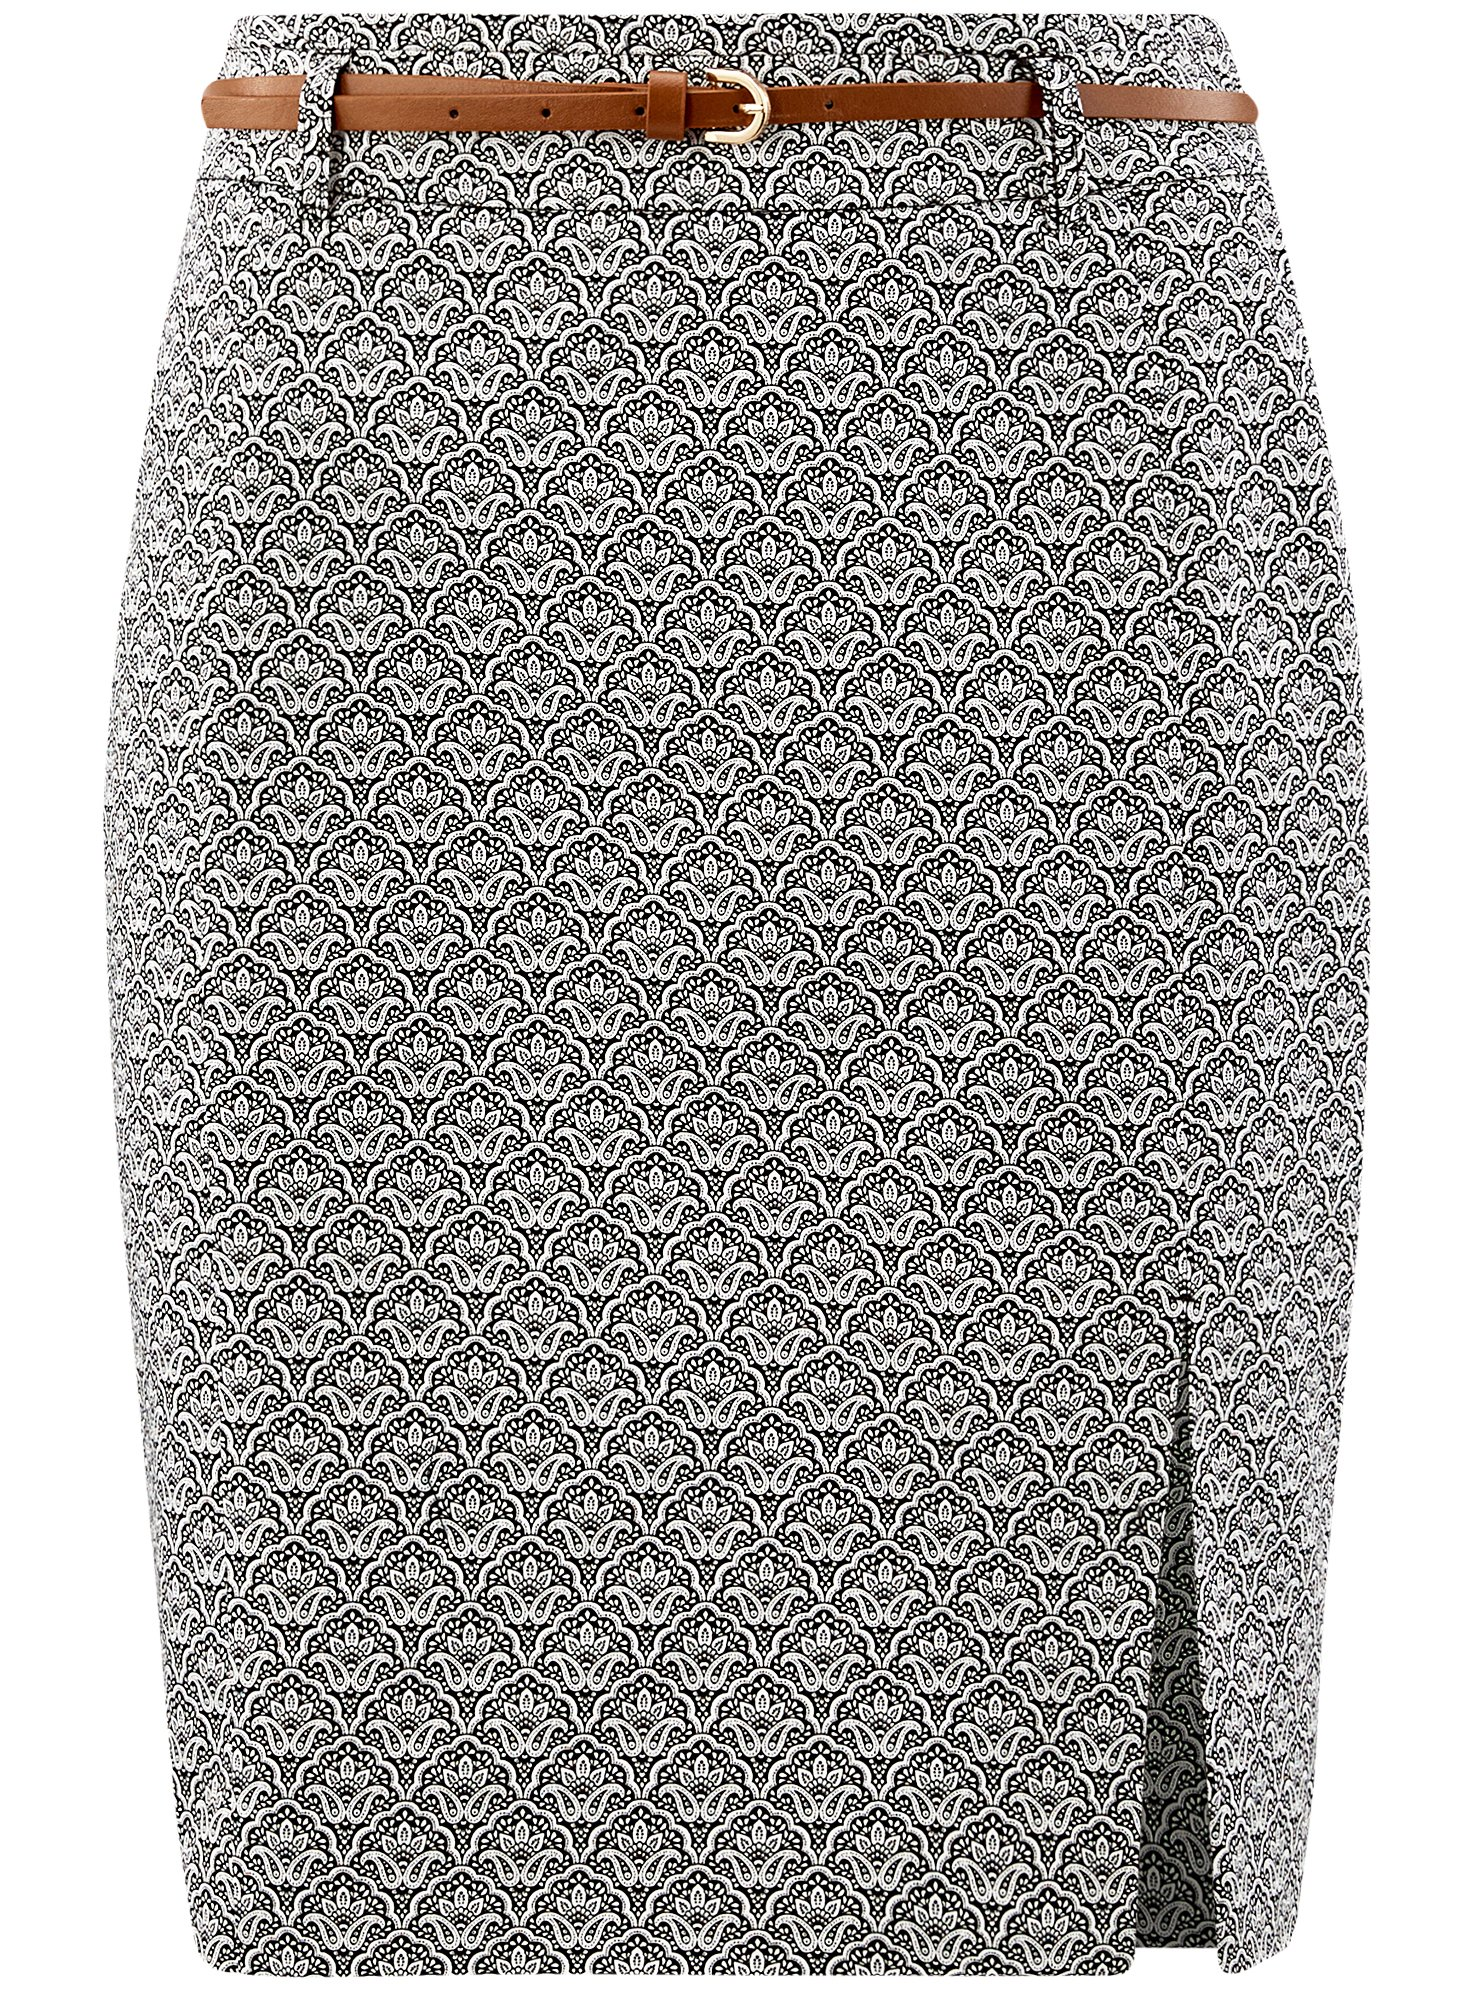 oodji Collection Women's Straight Belted Skirt, Grey, 8 by oodji (Image #7)